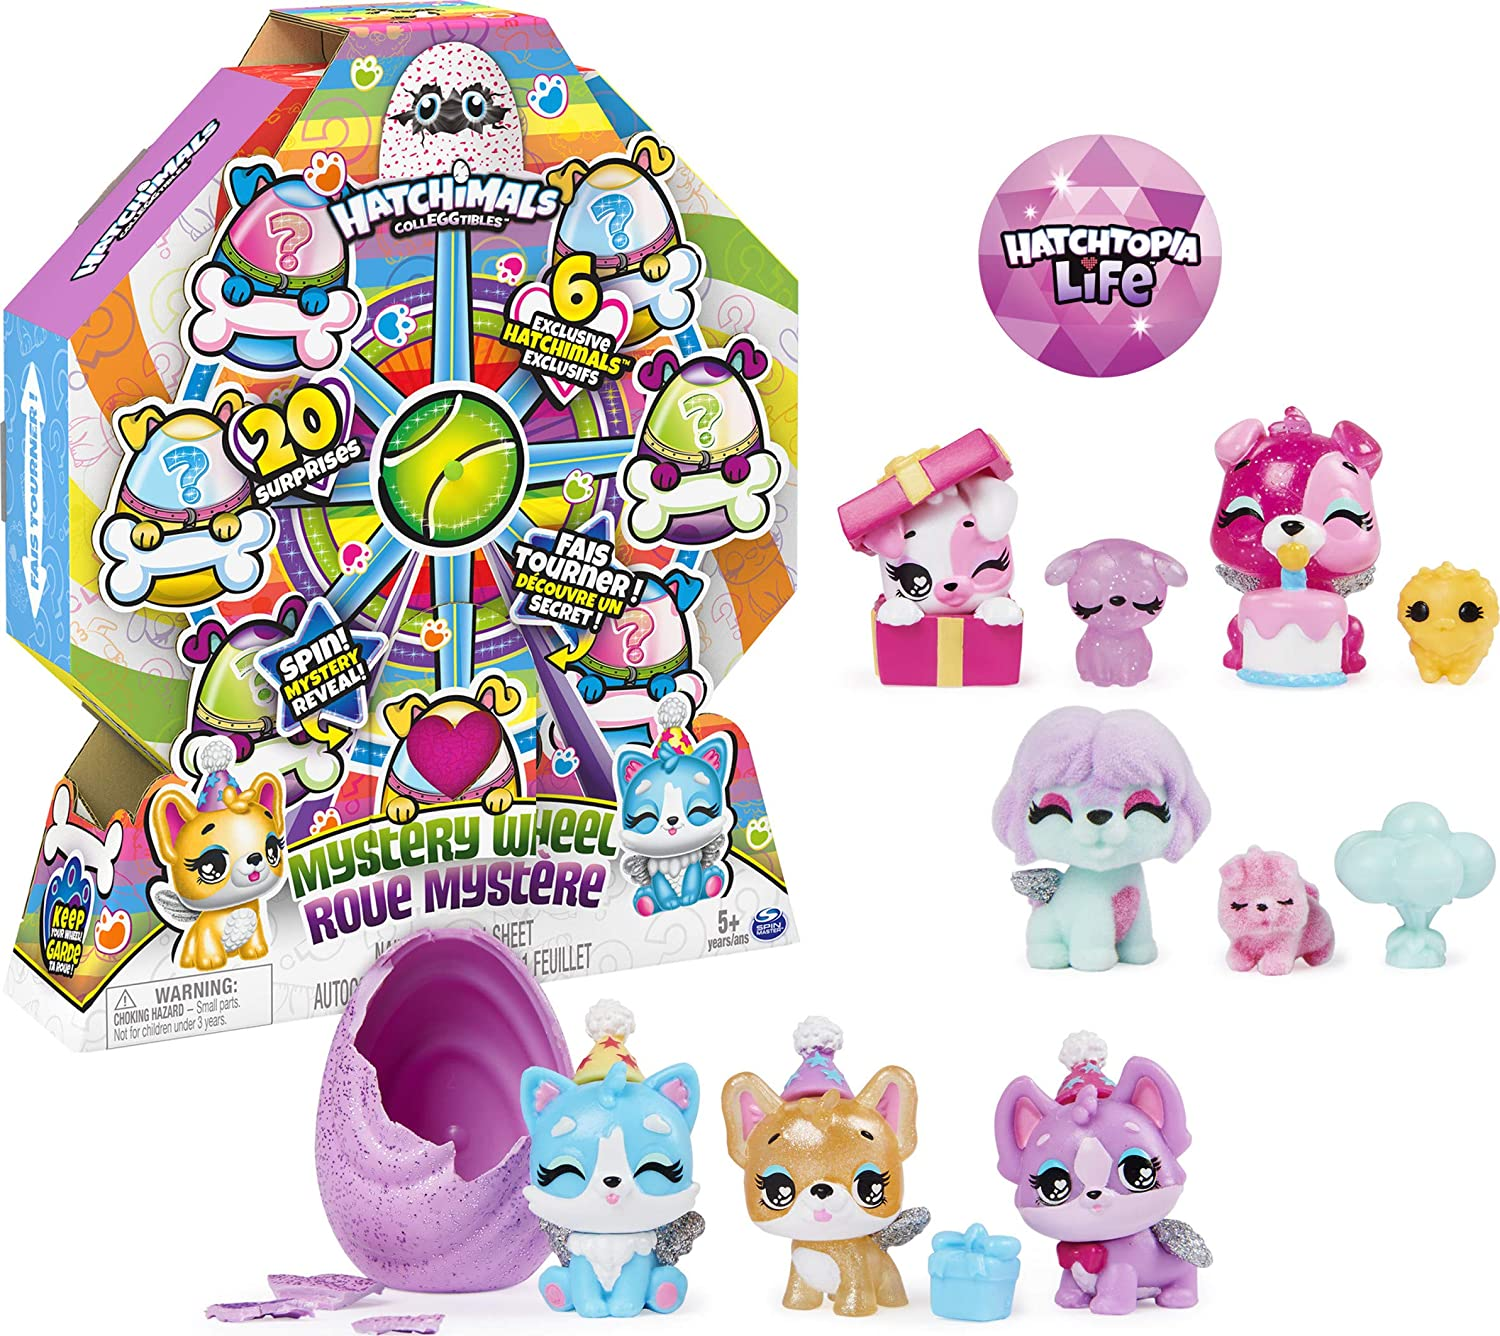 HATCHIMALS CollEGGtibles, Puppy Party Mystery Wheel with 20 Surprises 20% OFF £11.99 @ Amazon